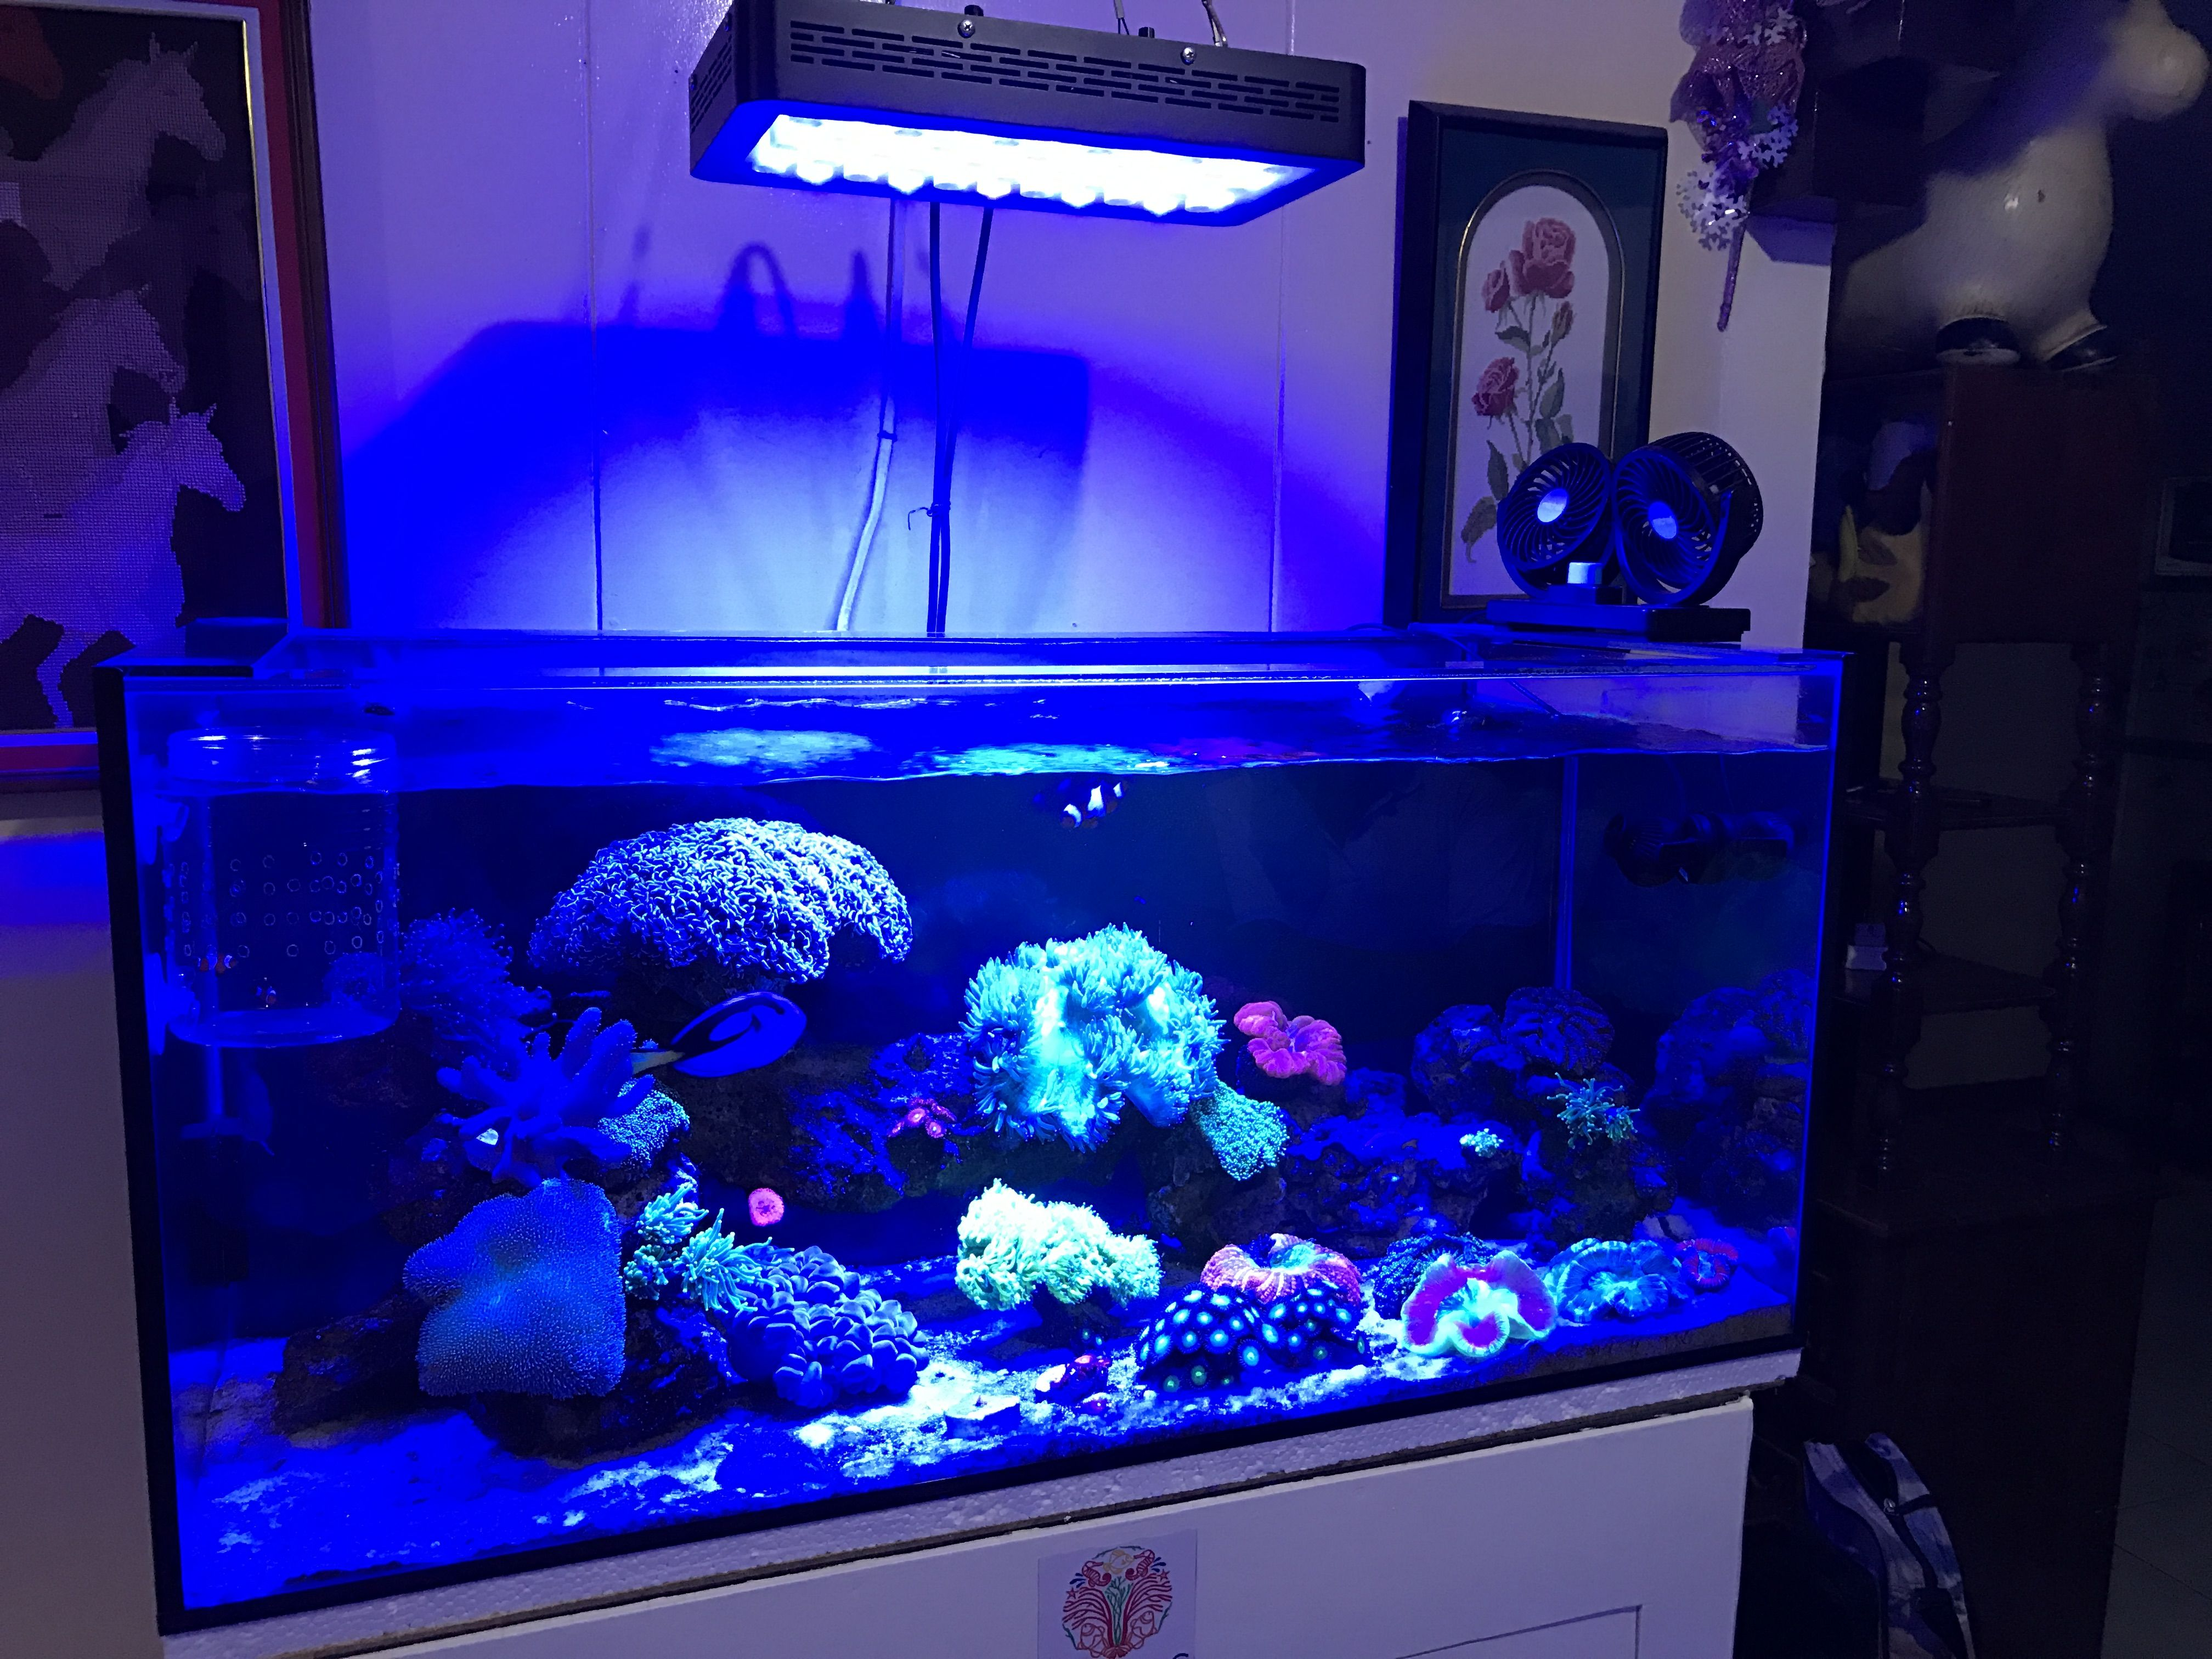 by in latest videos more here has nature depth he green layout of james photo and tutorials is machine which findley articles light an video the aquascape shallow how aquarium to simplicity photos lights aquascaping superstore titled second